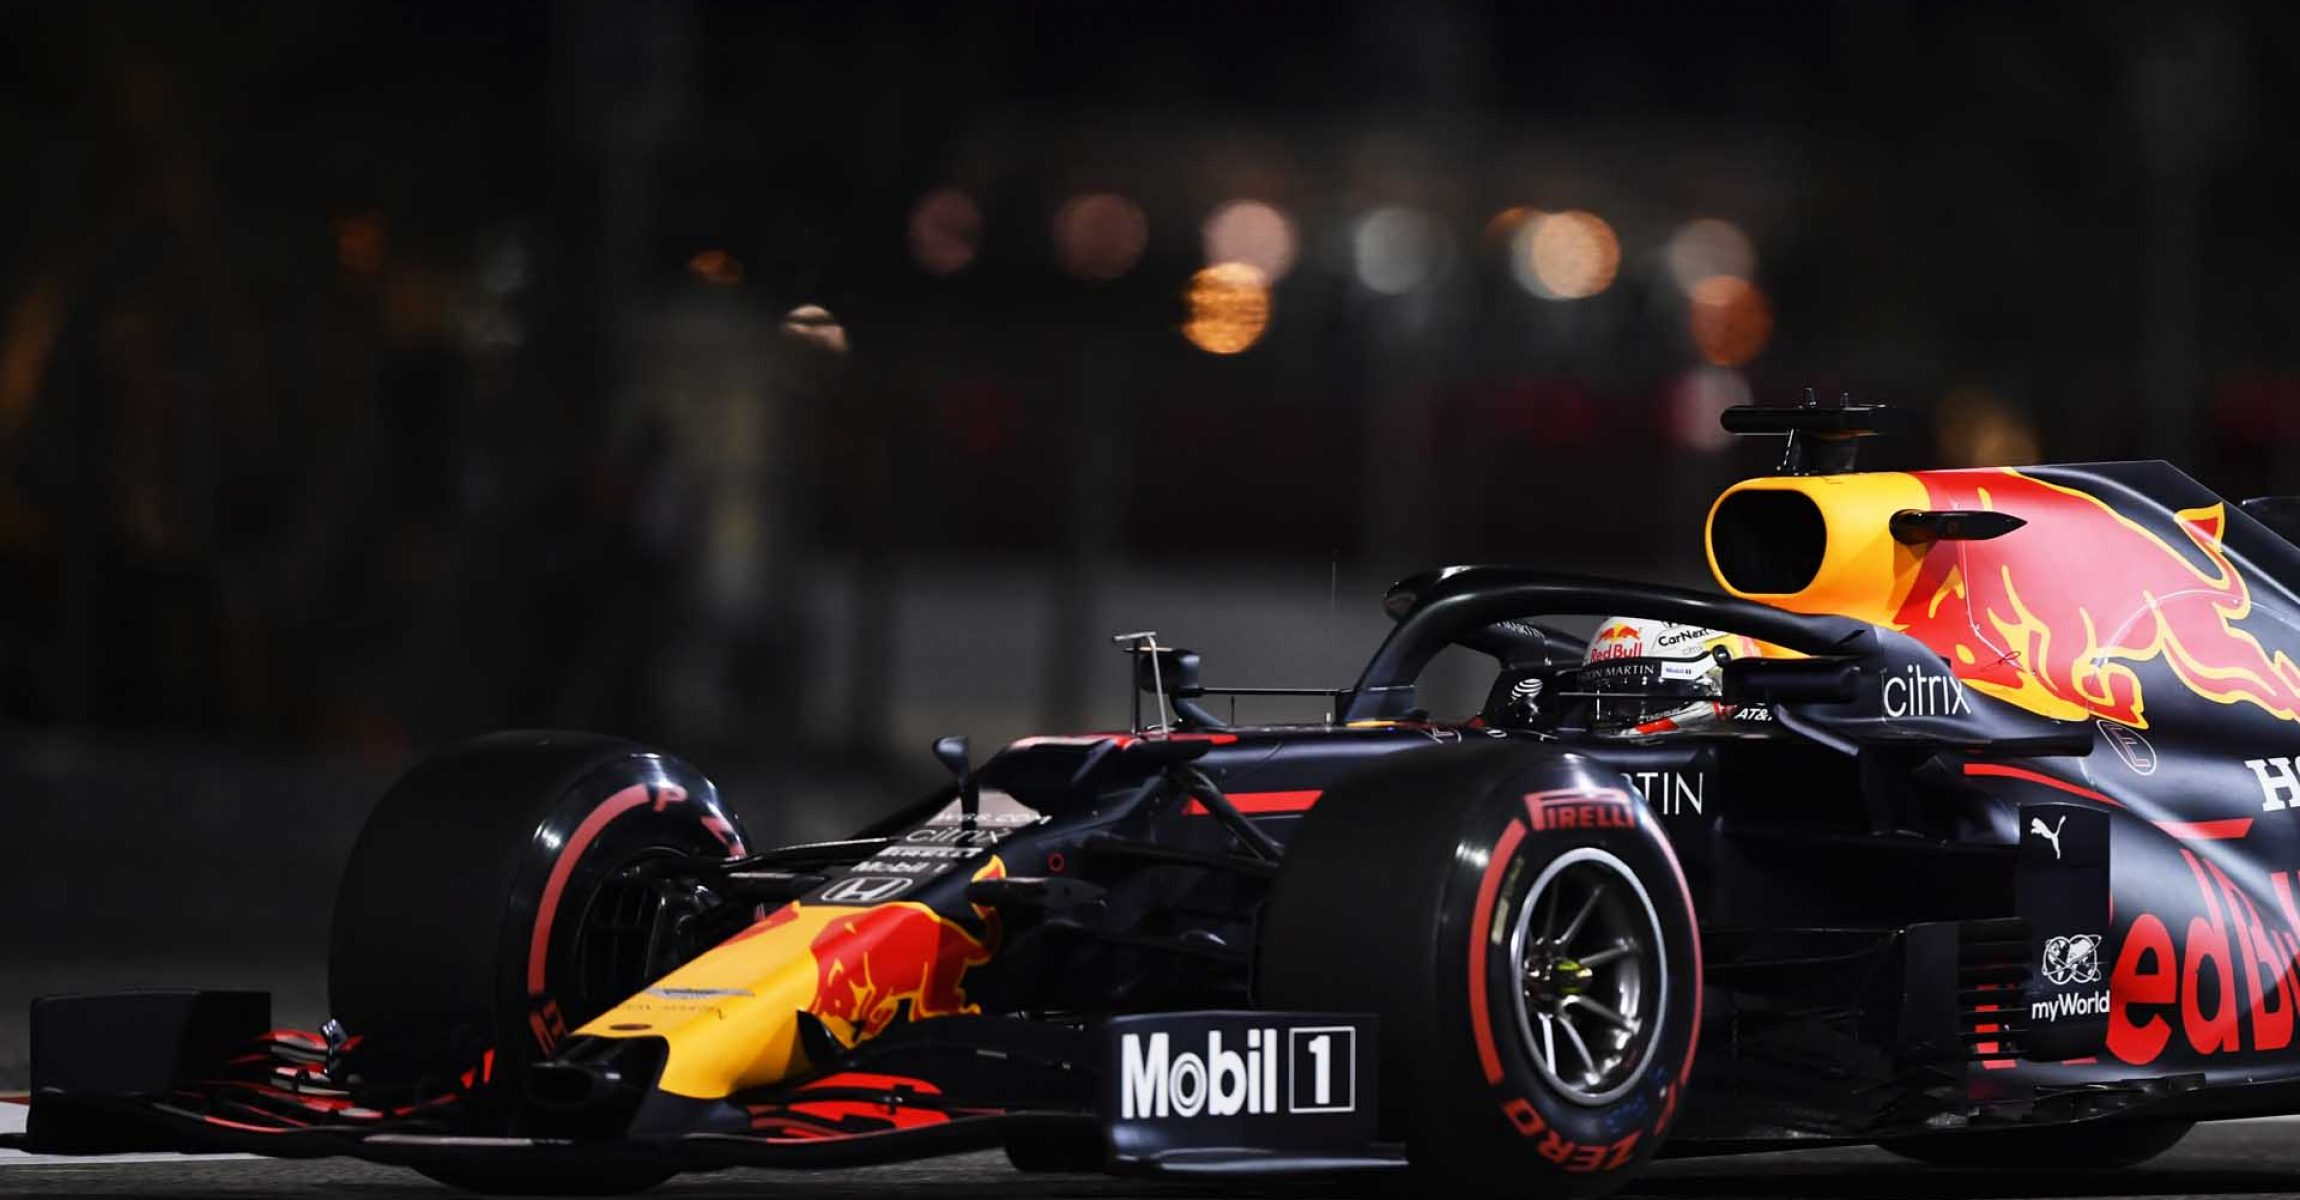 BAHRAIN, BAHRAIN - DECEMBER 04: Max Verstappen of the Netherlands driving the (33) Aston Martin Red Bull Racing RB16 on track during practice ahead of the F1 Grand Prix of Sakhir at Bahrain International Circuit on December 04, 2020 in Bahrain, Bahrain. (Photo by Rudy Carezzevoli/Getty Images)